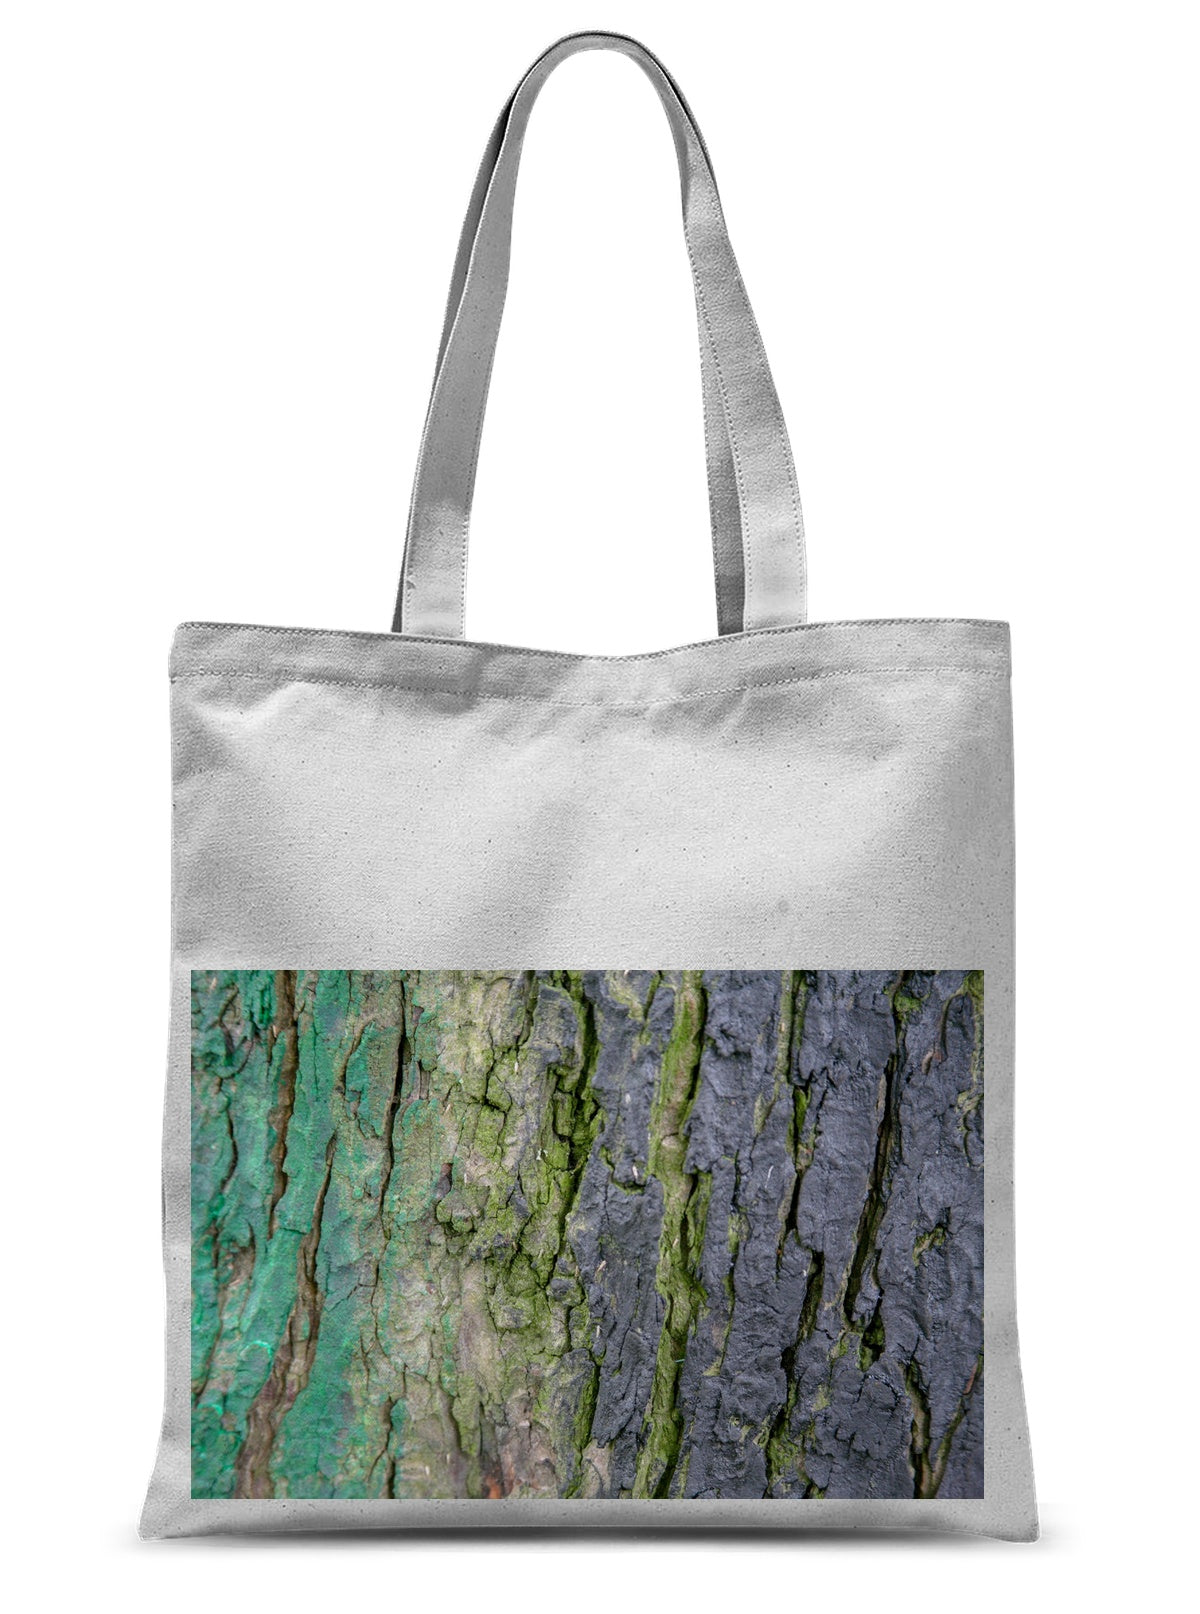 DAUB:TOOTING COMMON Sublimation Tote Bag - Amy Adams Photography